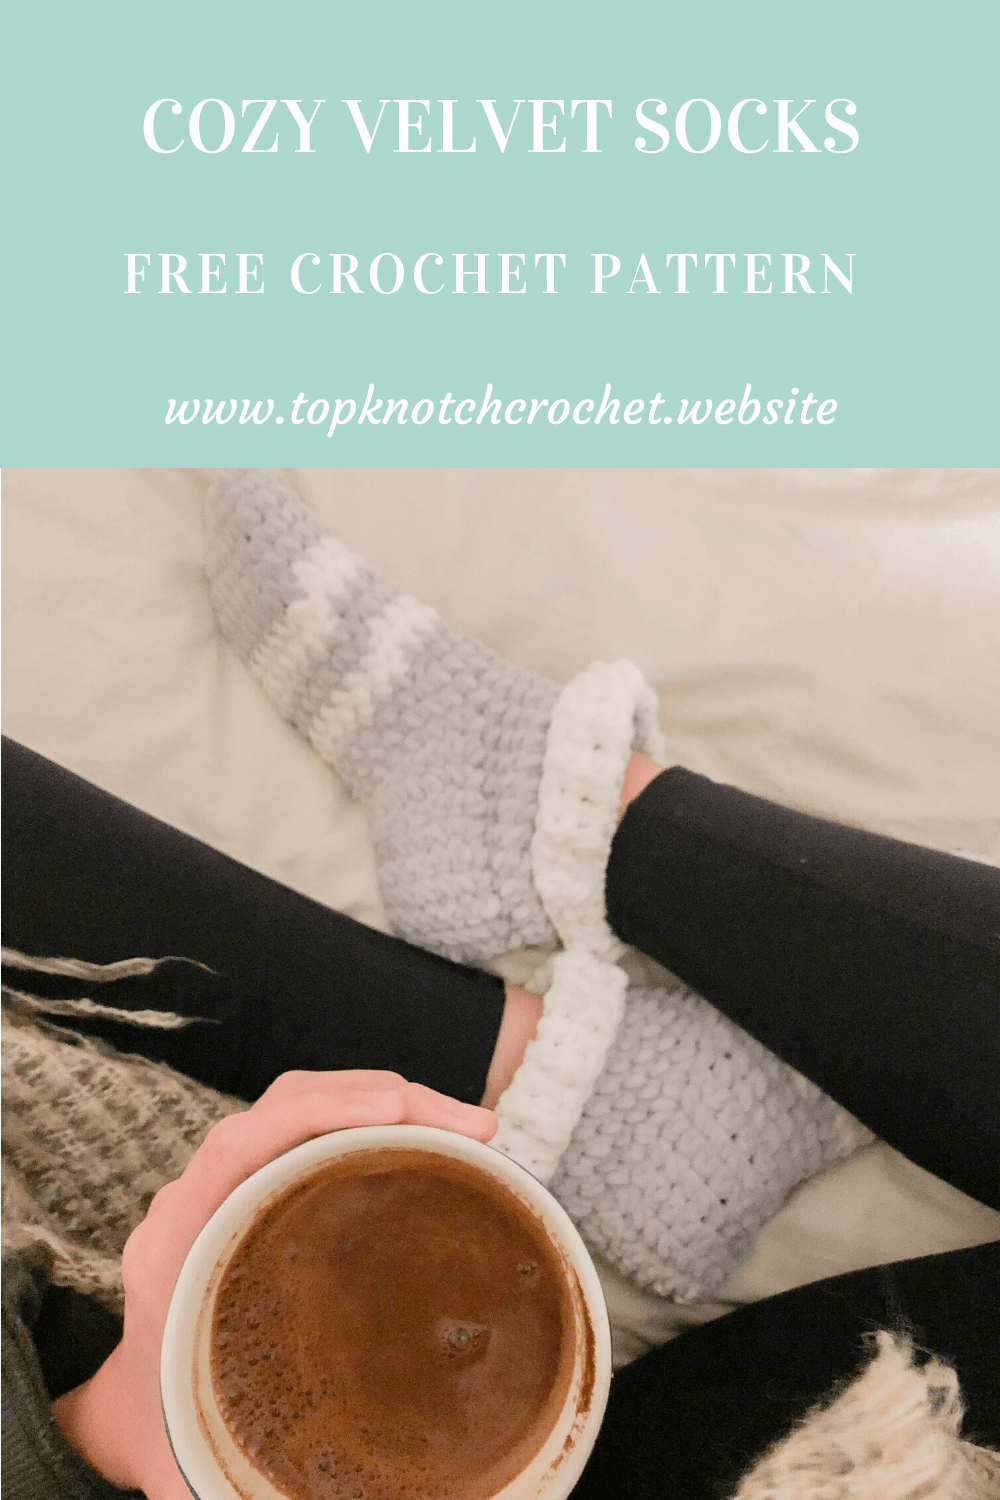 Cozy velvet crochet socks- Free pattern and photo tutorial.